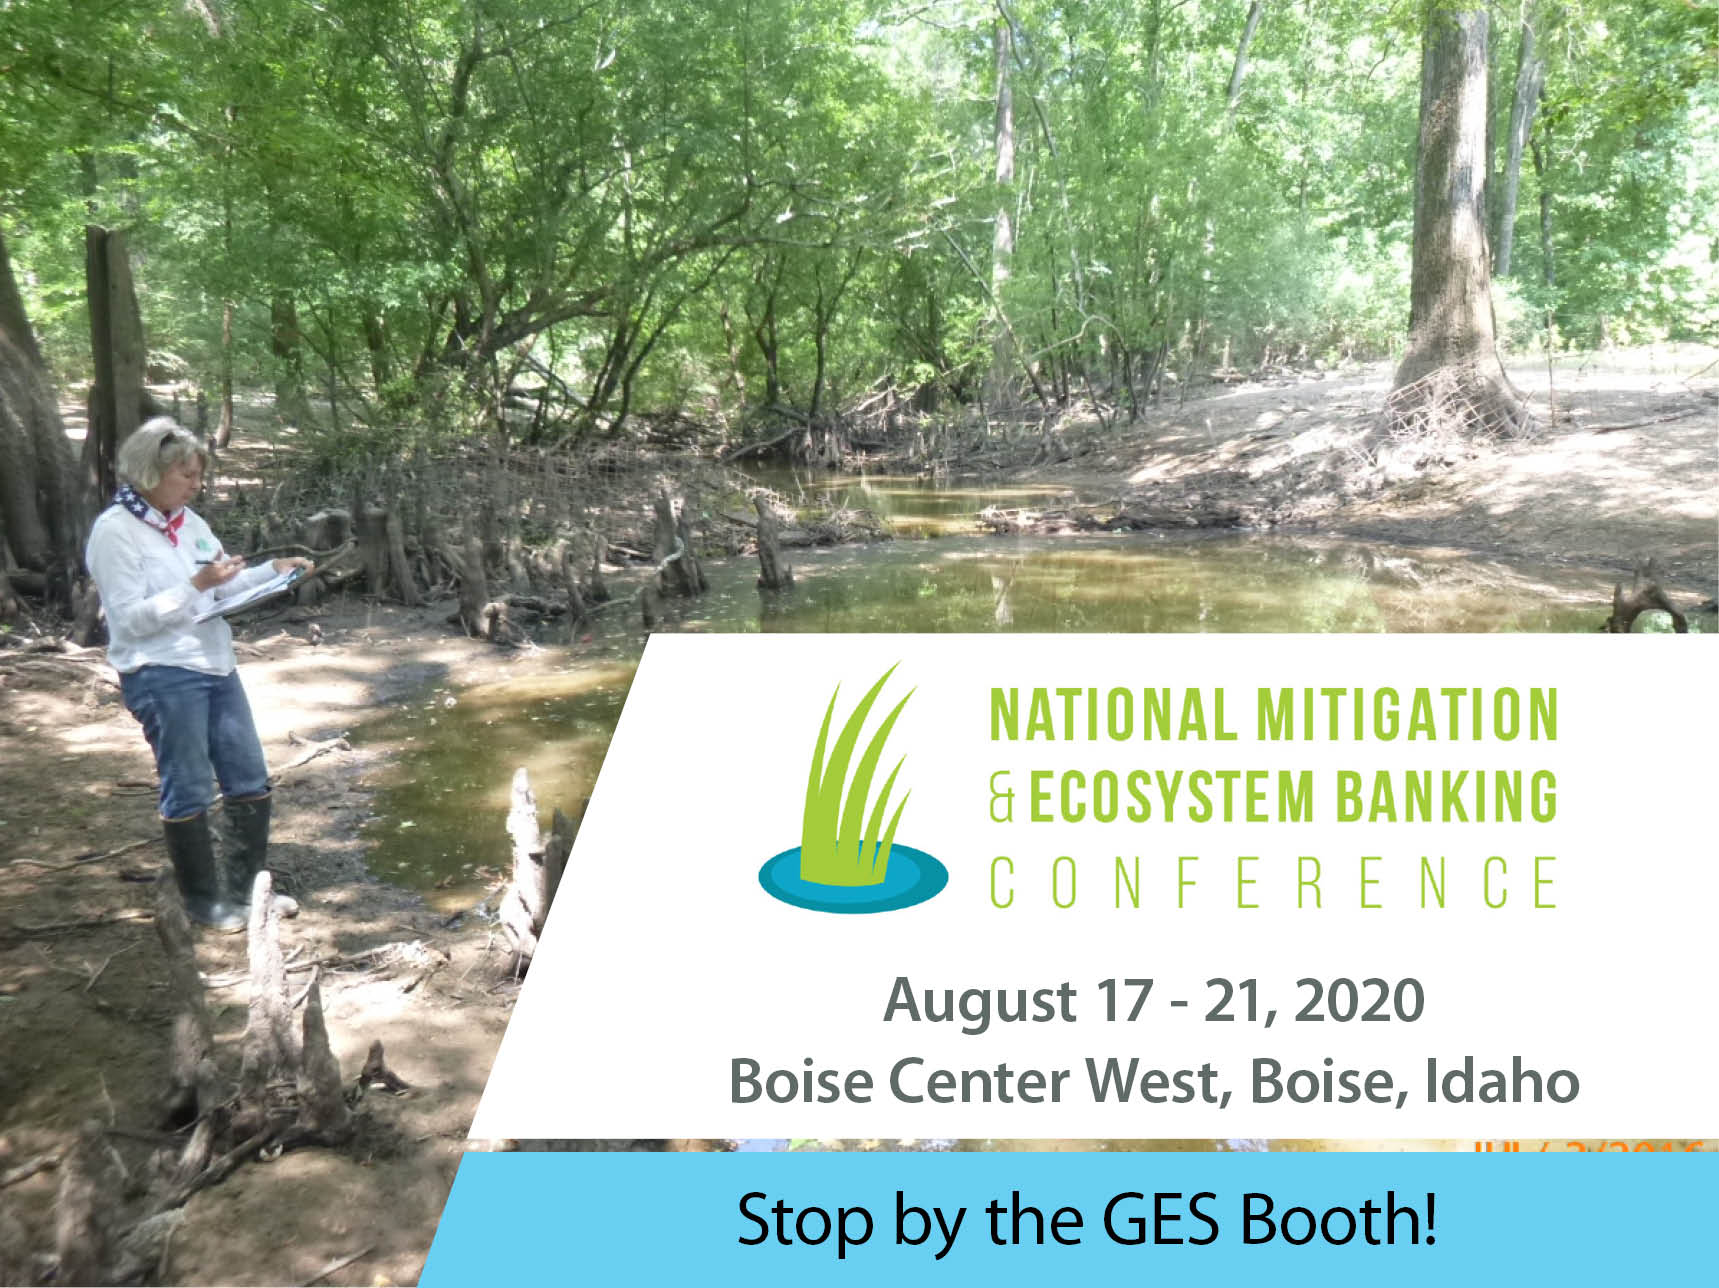 National Mitigation & Ecosystem Banking Conference